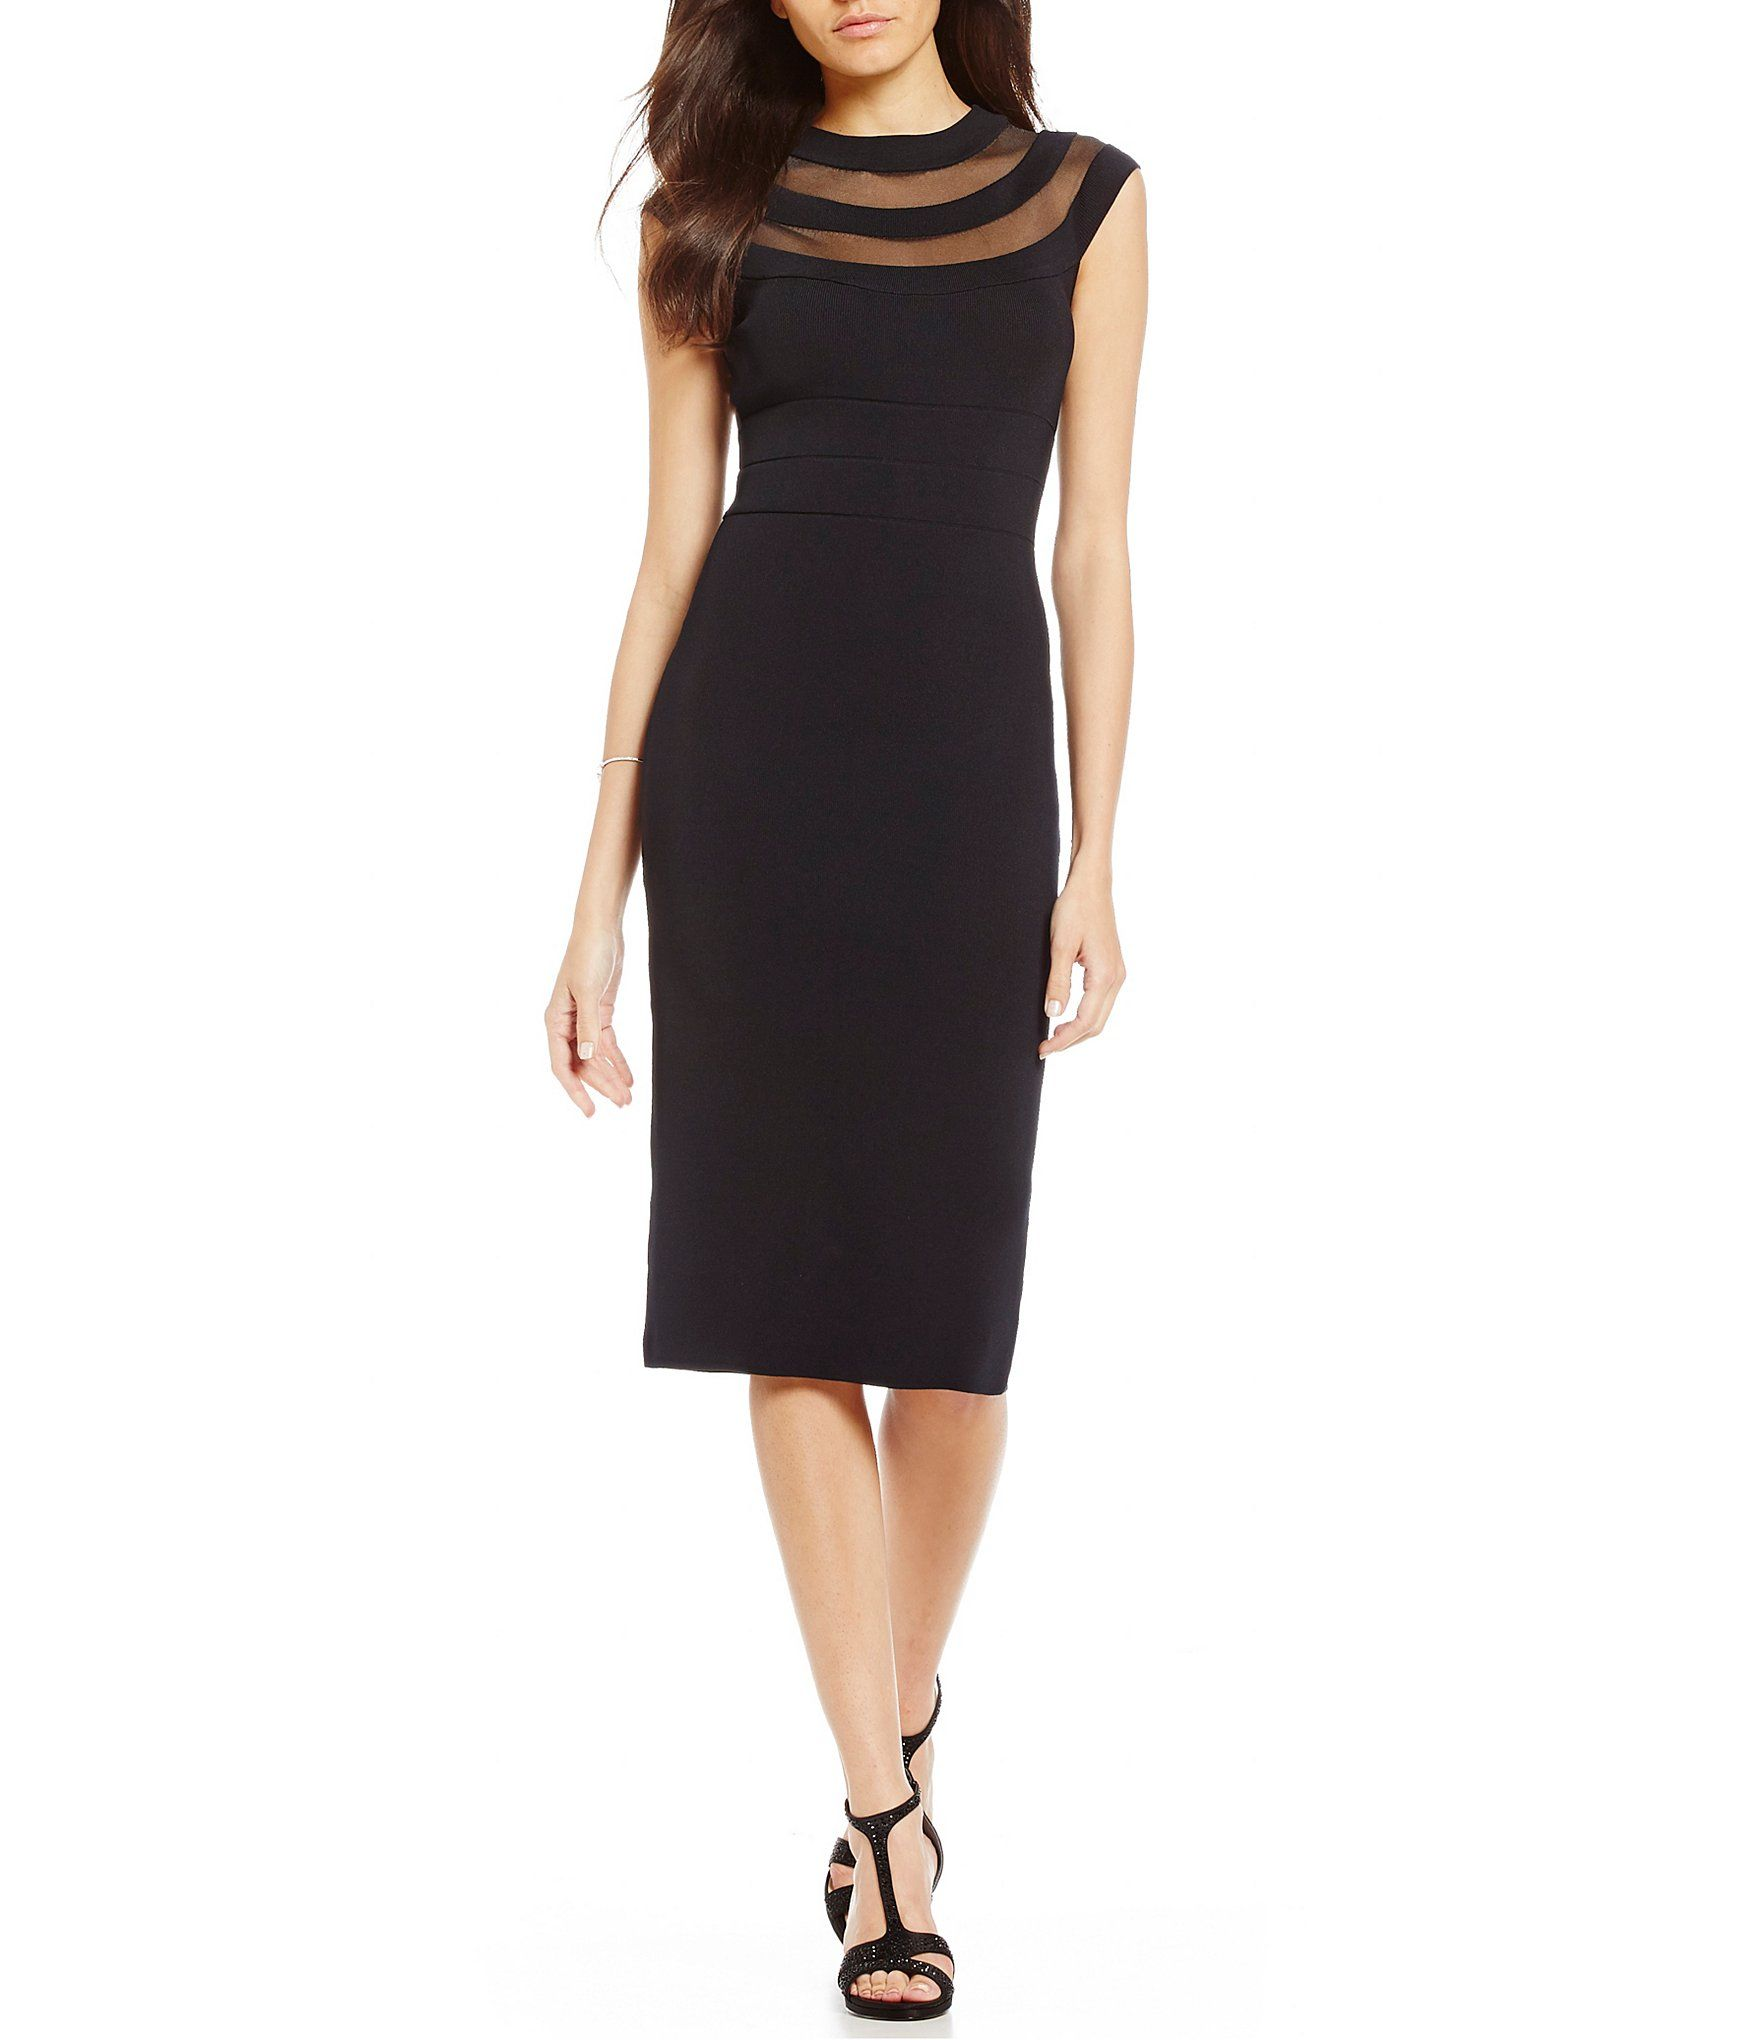 Shop for eliza j mesh inset sheath dress at dillards visit